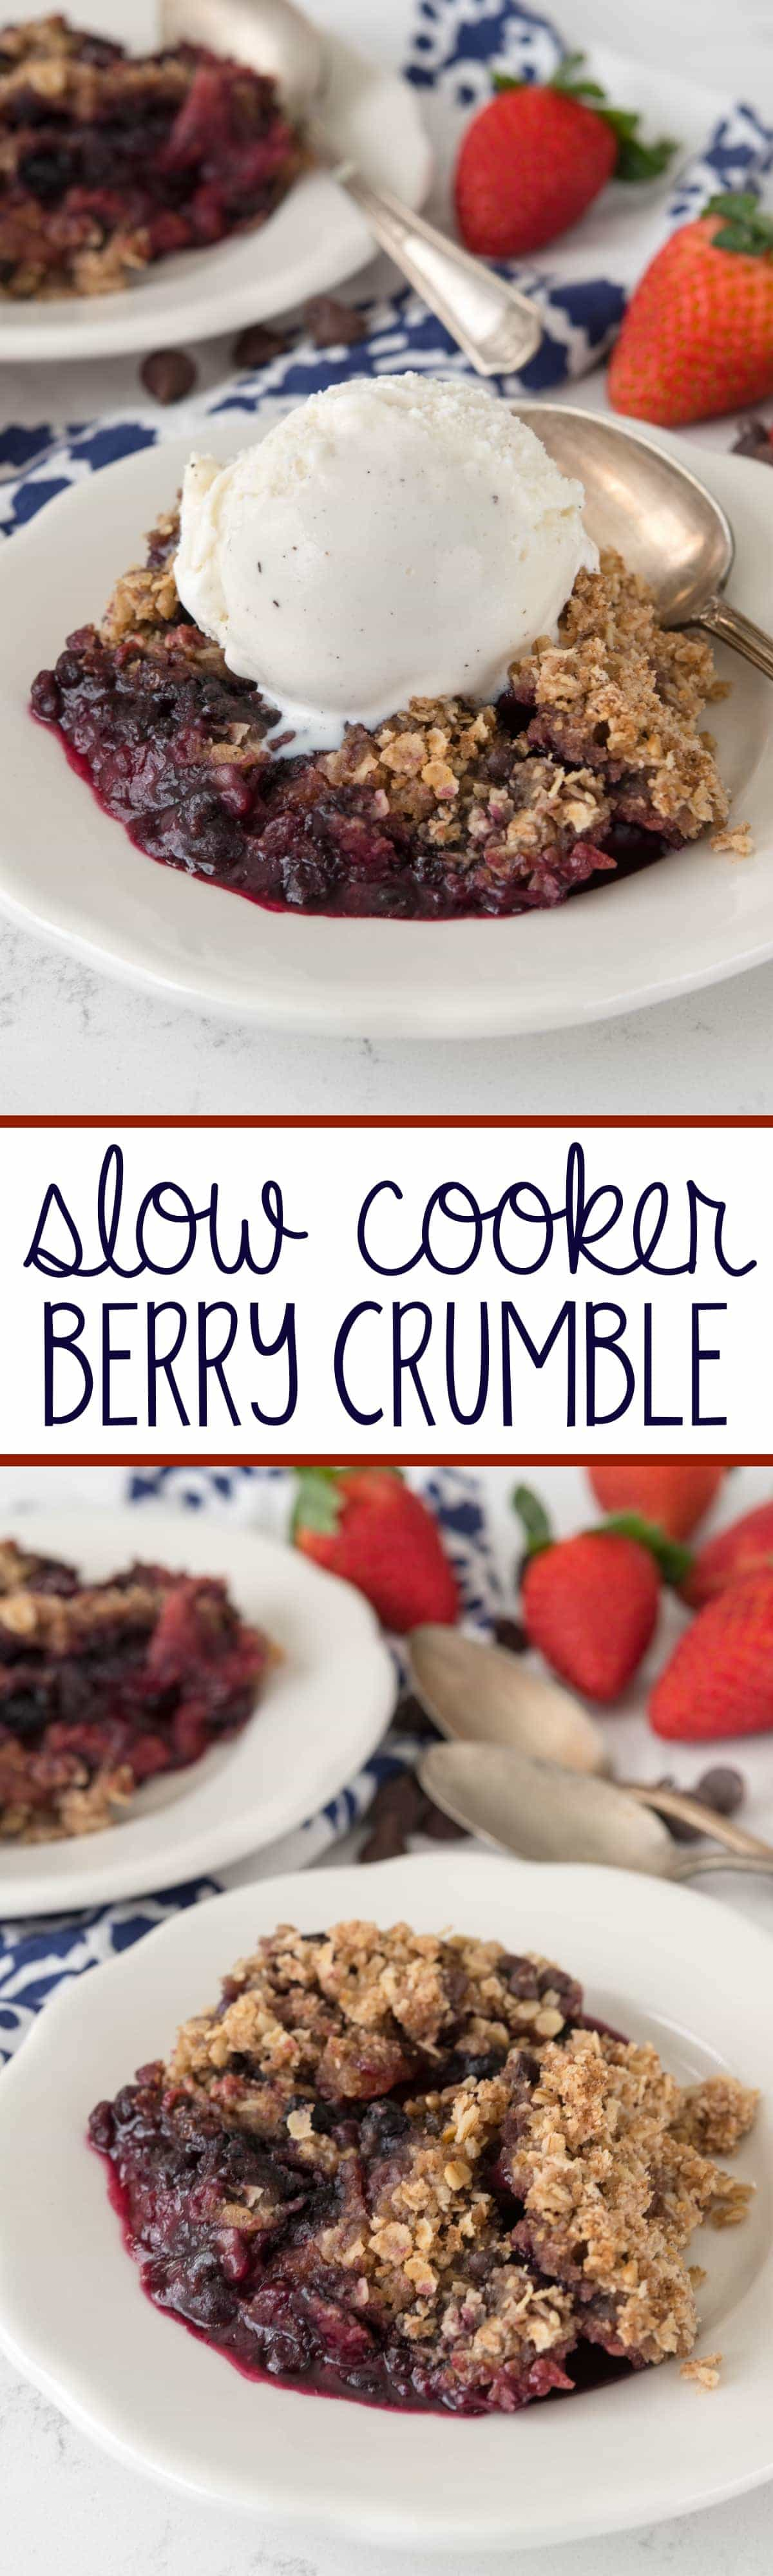 Slow Cooker Berry Crumble - this EASY recipe makes crumble in a crockpot! It's like a cookie on top of fruit, it's low sugar, and it's gooey and perfect.